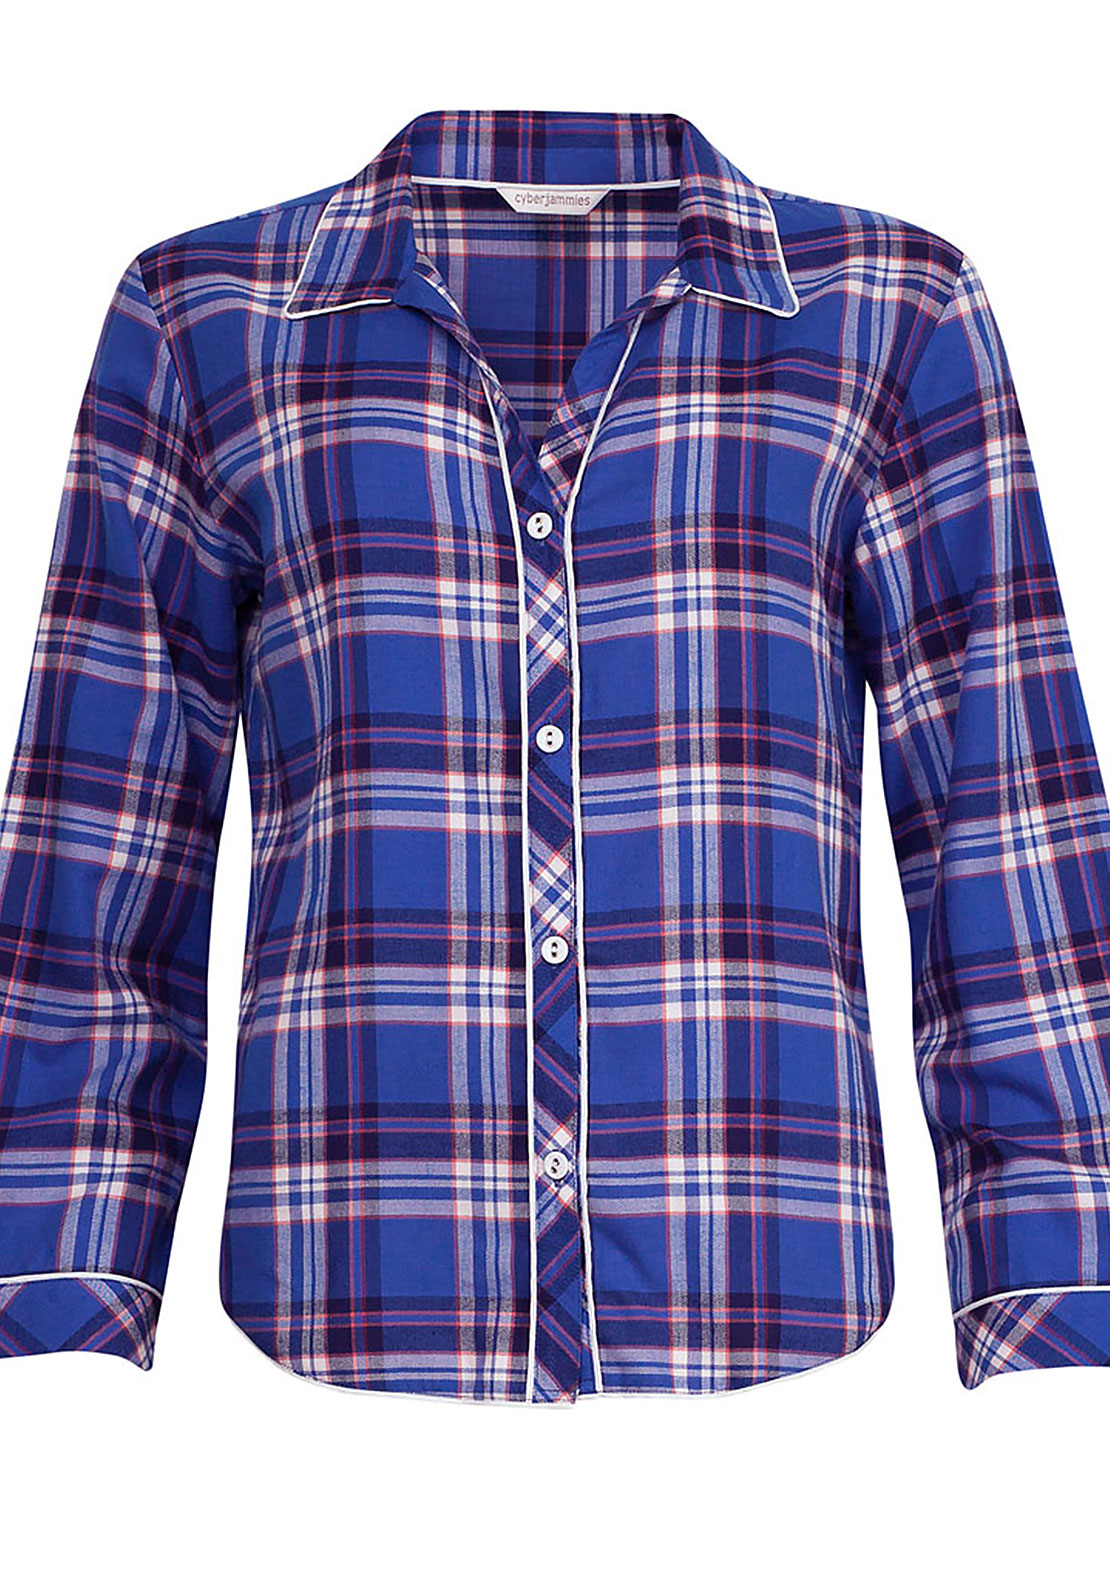 Cyberjammies Winter Flower Checked Pyjama Top, Dark Blue